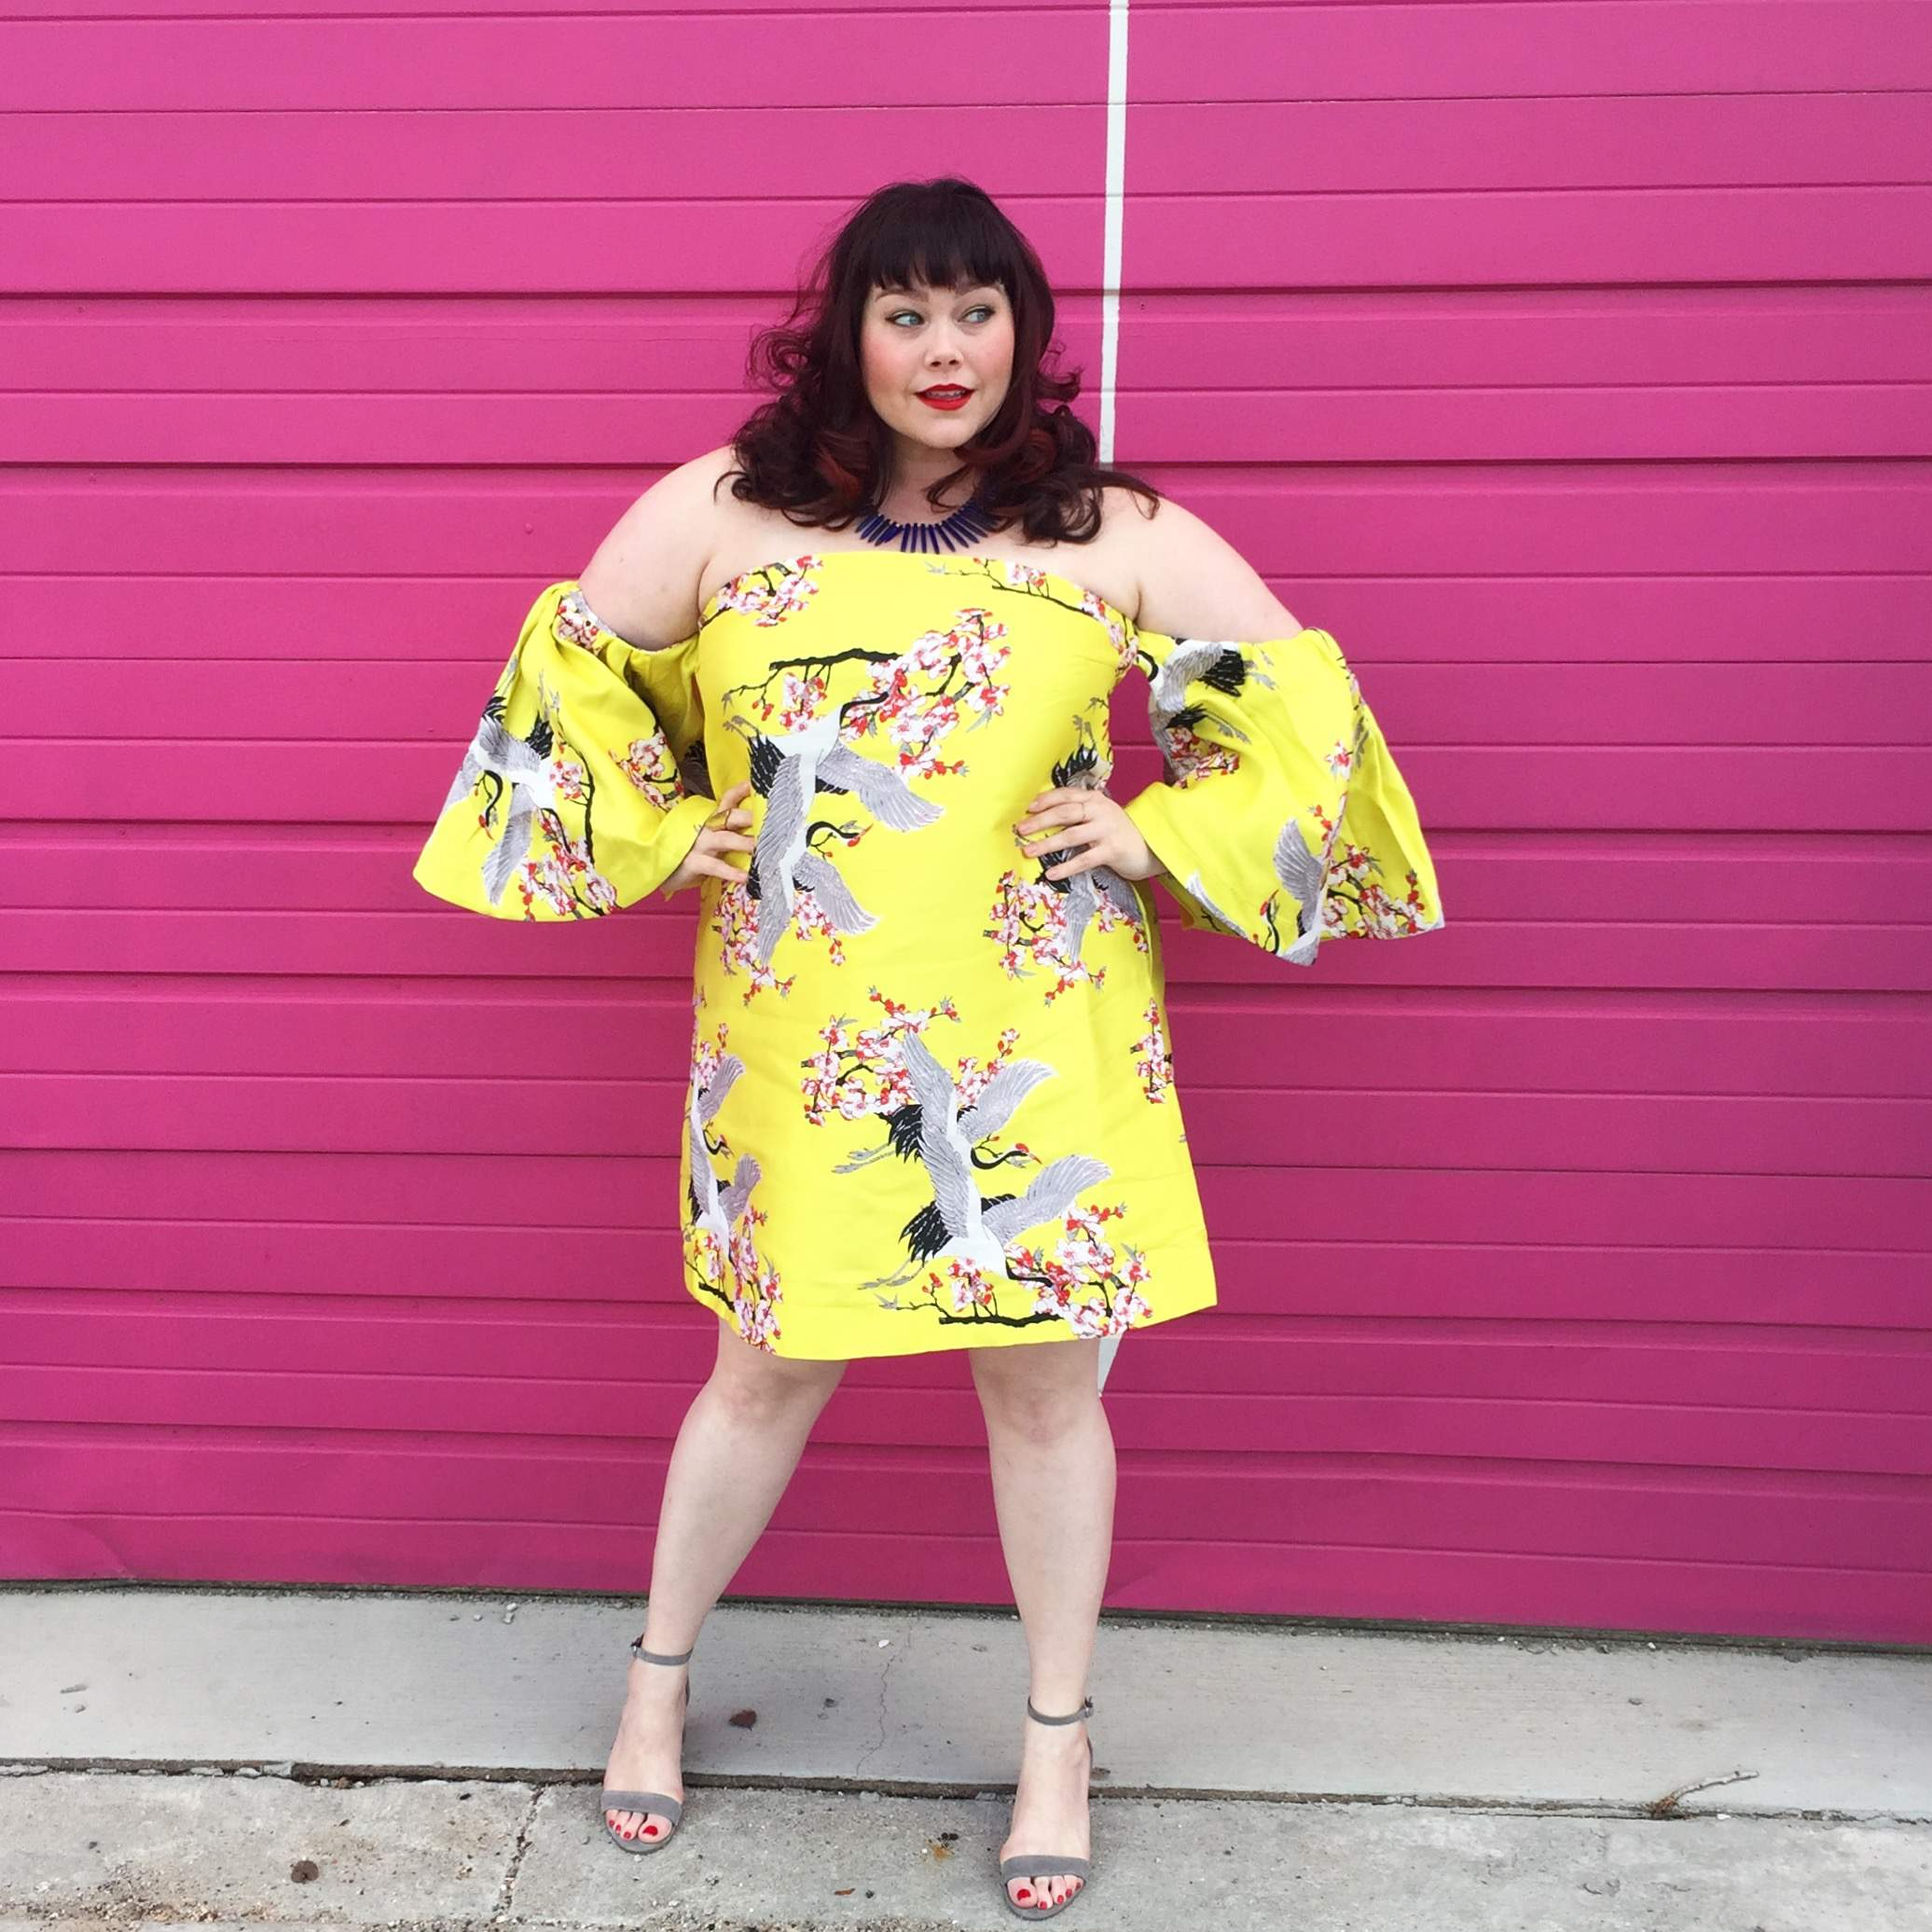 Plus Size Fashion Blogger- Amber of Style Plus Curves